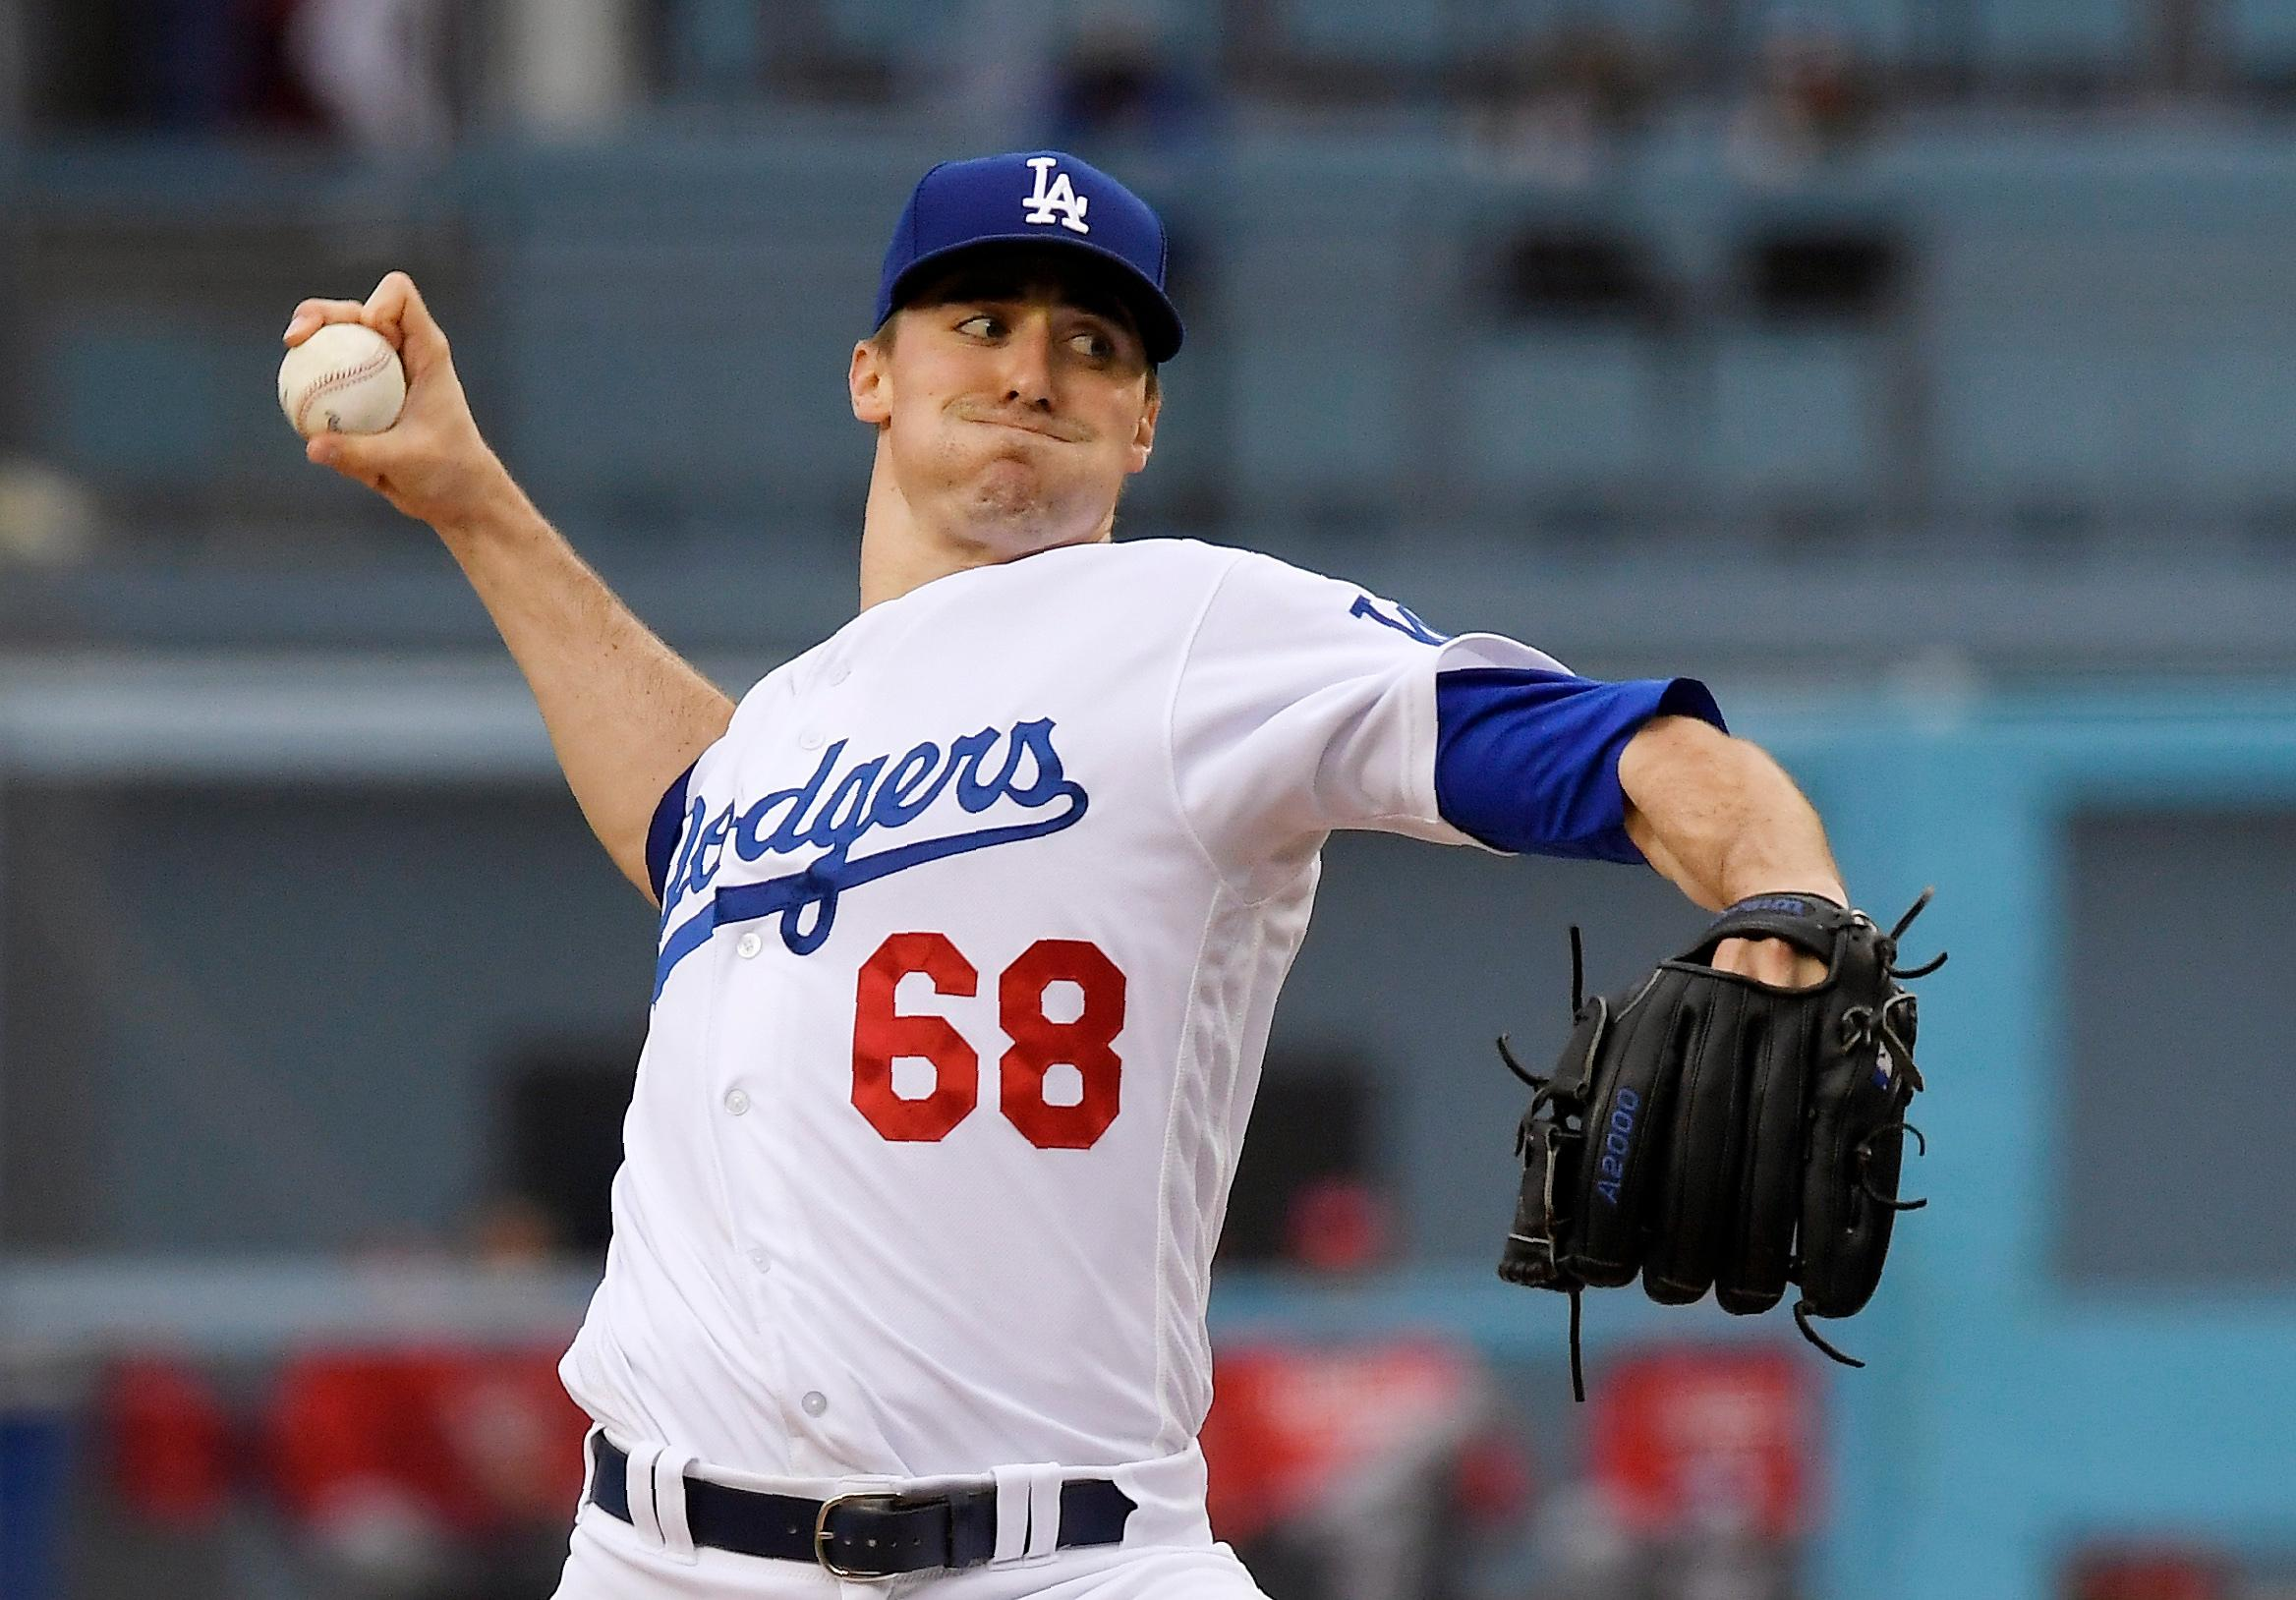 Los Angeles Dodgers pitcher Ross Stripling throws during the first inning of a baseball game against the Cincinnati Reds on Saturday, May 12, 2018, in Los Angeles. (AP Photo/Mark J. Terrill)